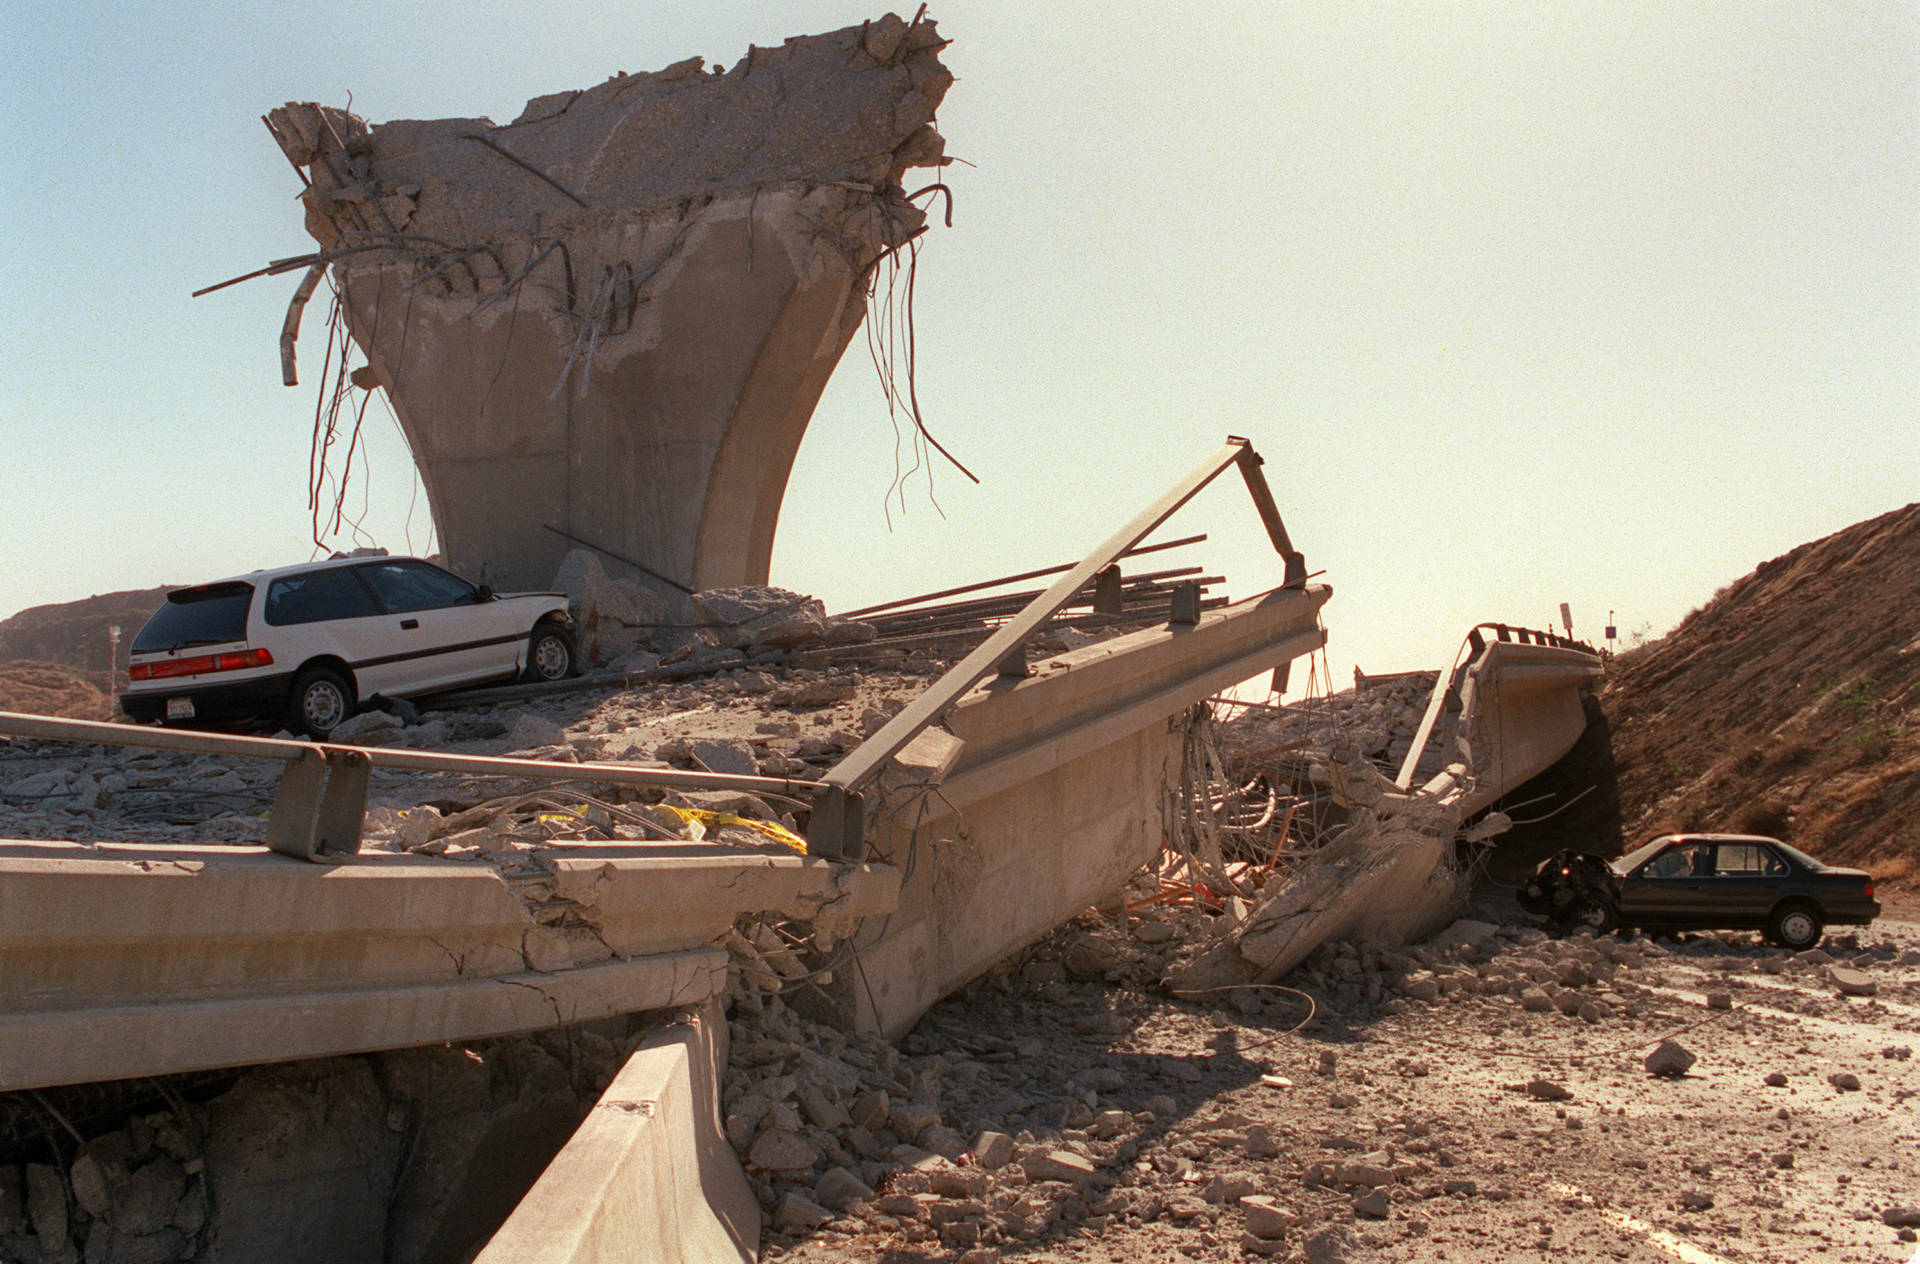 Cars lie smashed by the collapsed Interstate 5 connector few hours after Northridge earthquake, on January 17, 1994, in Sylmar, California. Jonathan Nourak/AFP/Getty Images